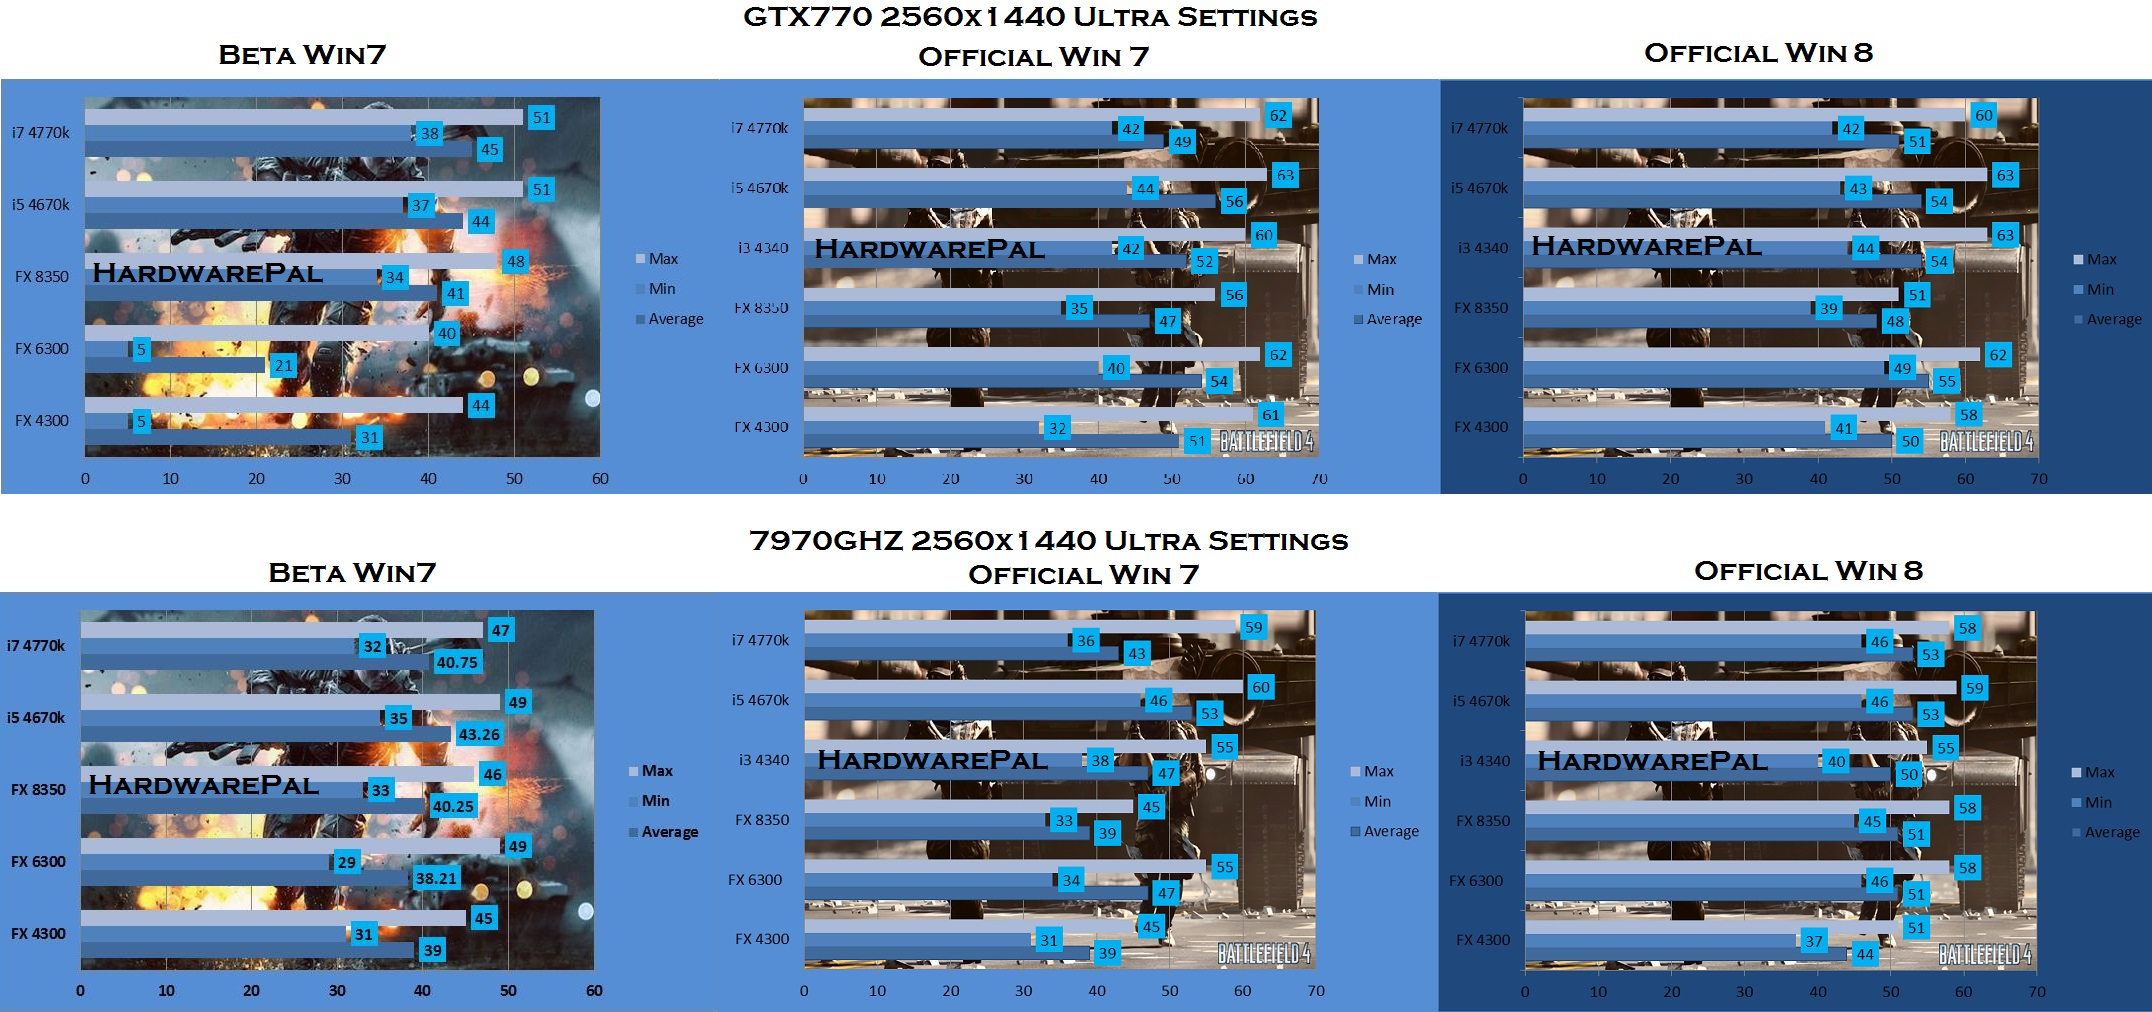 Battlefield 4 benchmark 2560 x 1440, Ultra Settings, NVidia 770 GTX 4GB vs 7970GHZ